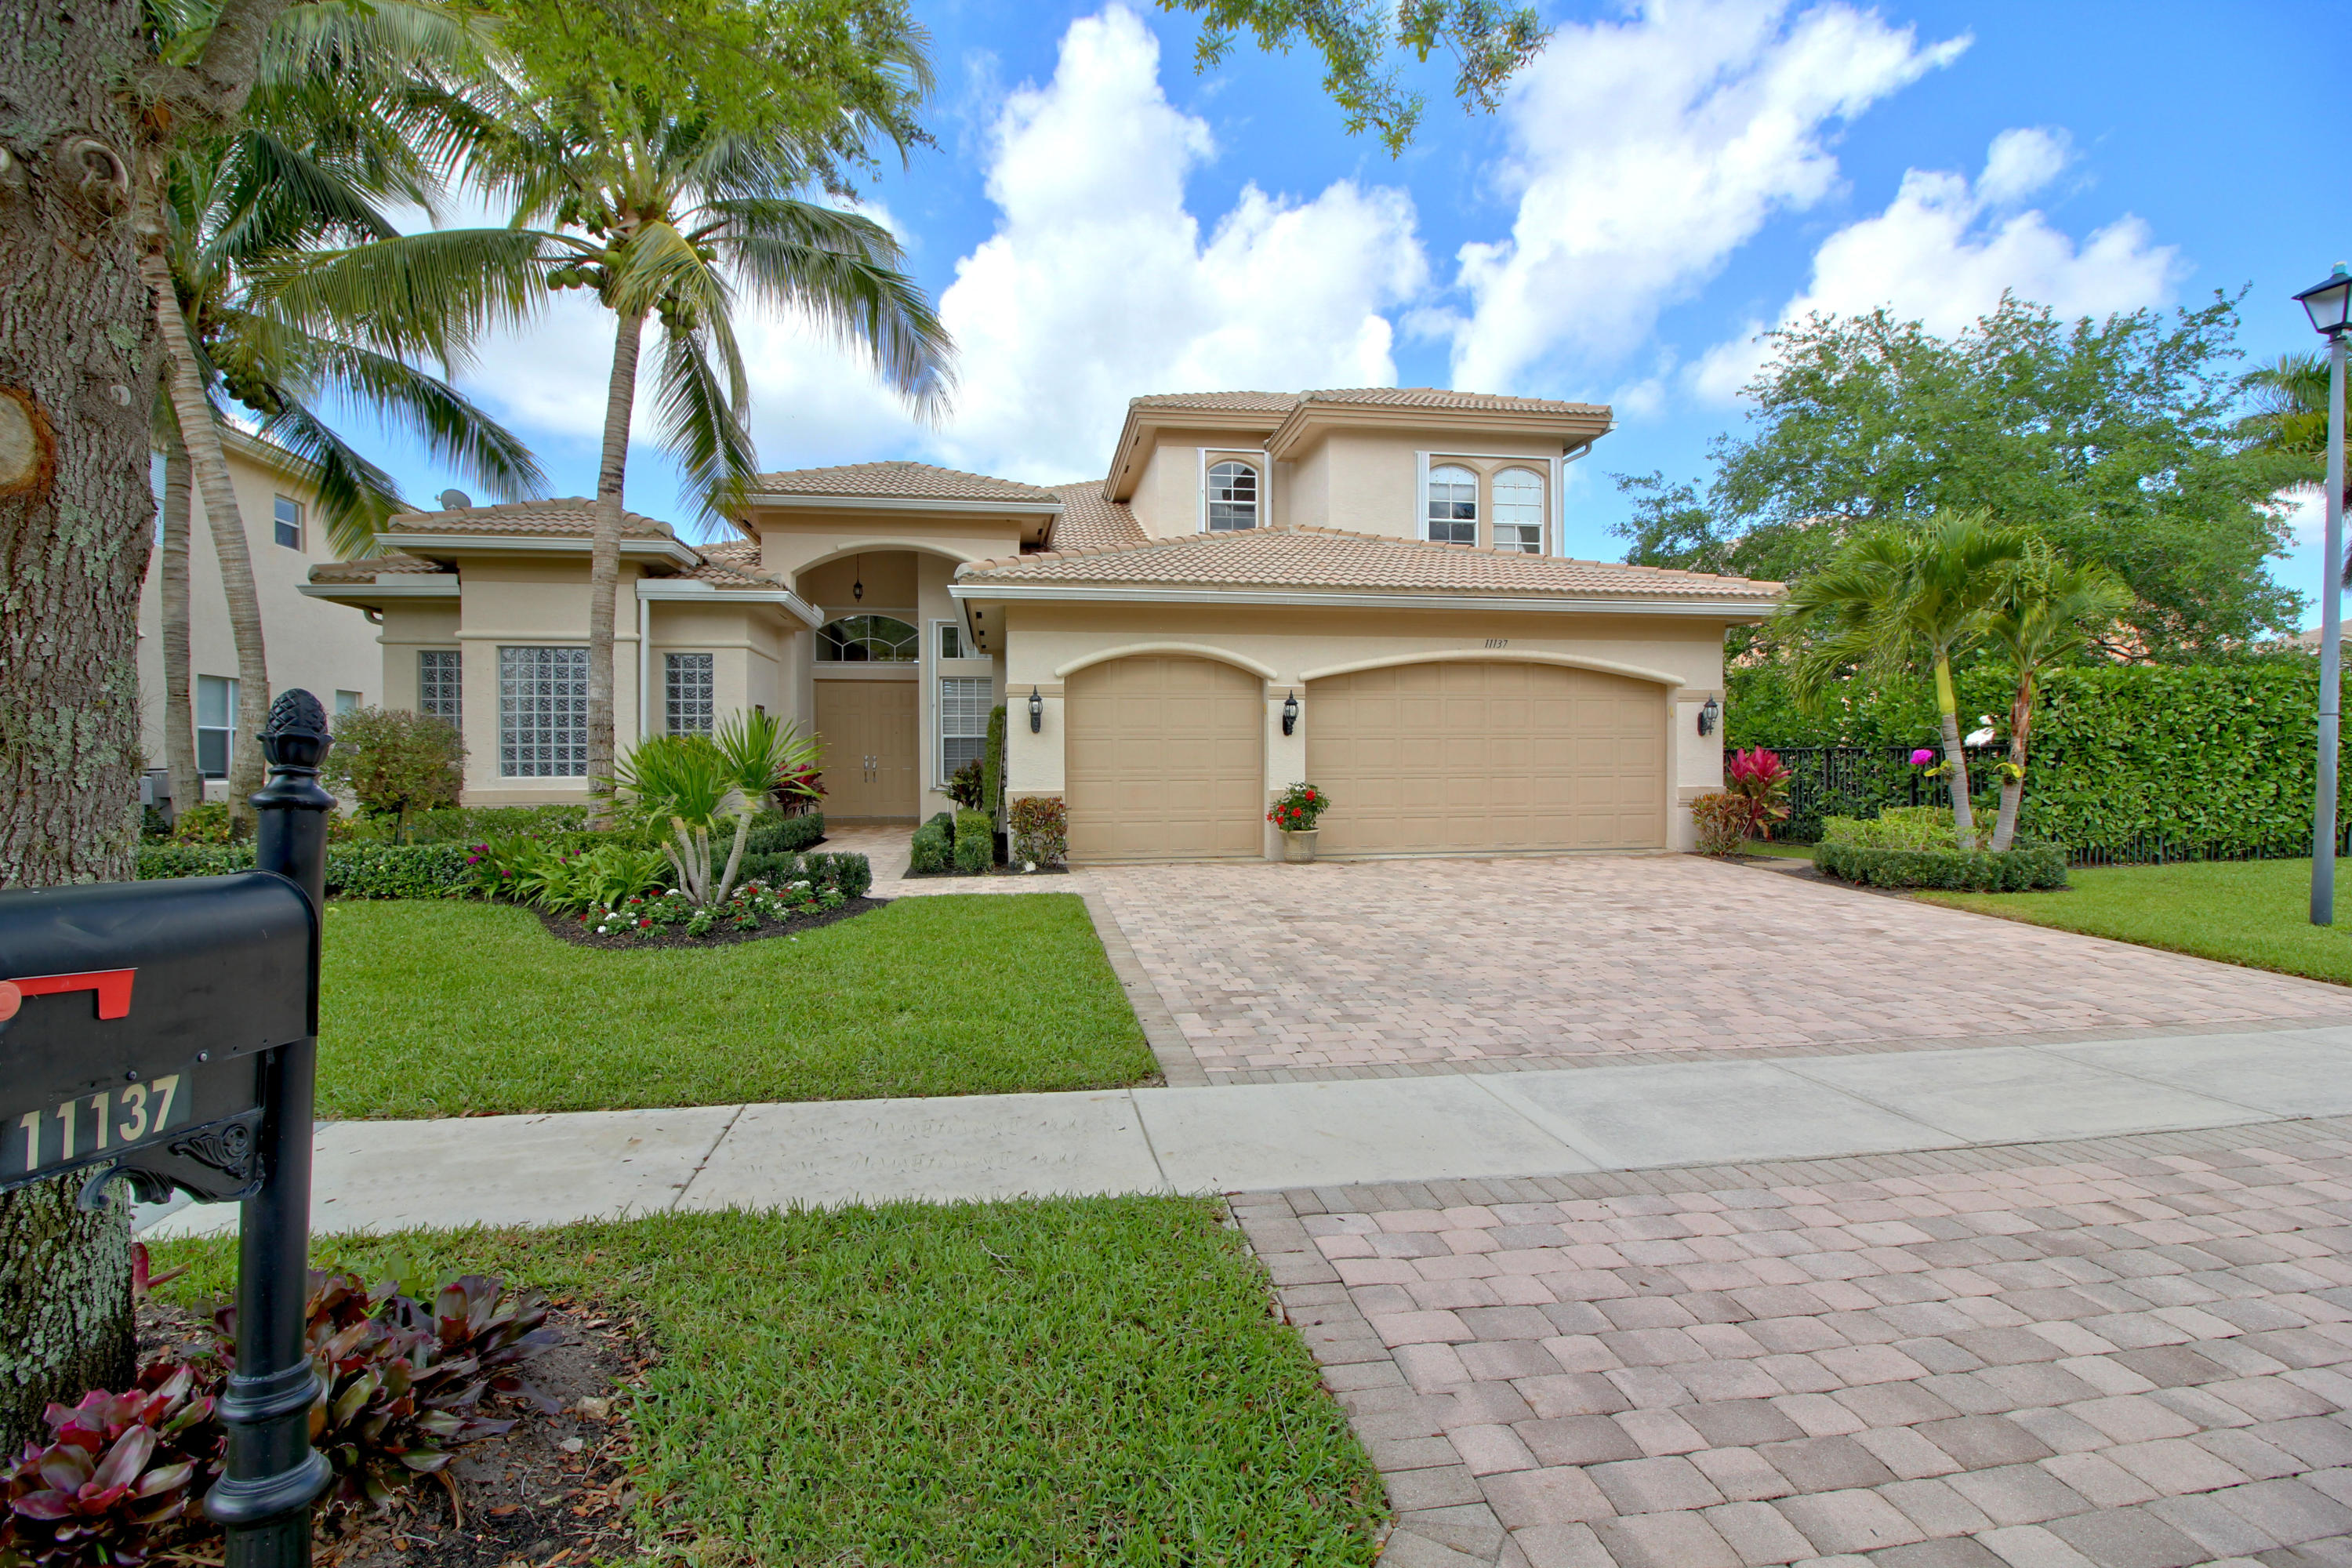 11137 Brandywine Lake Way Boynton Beach, FL 33473